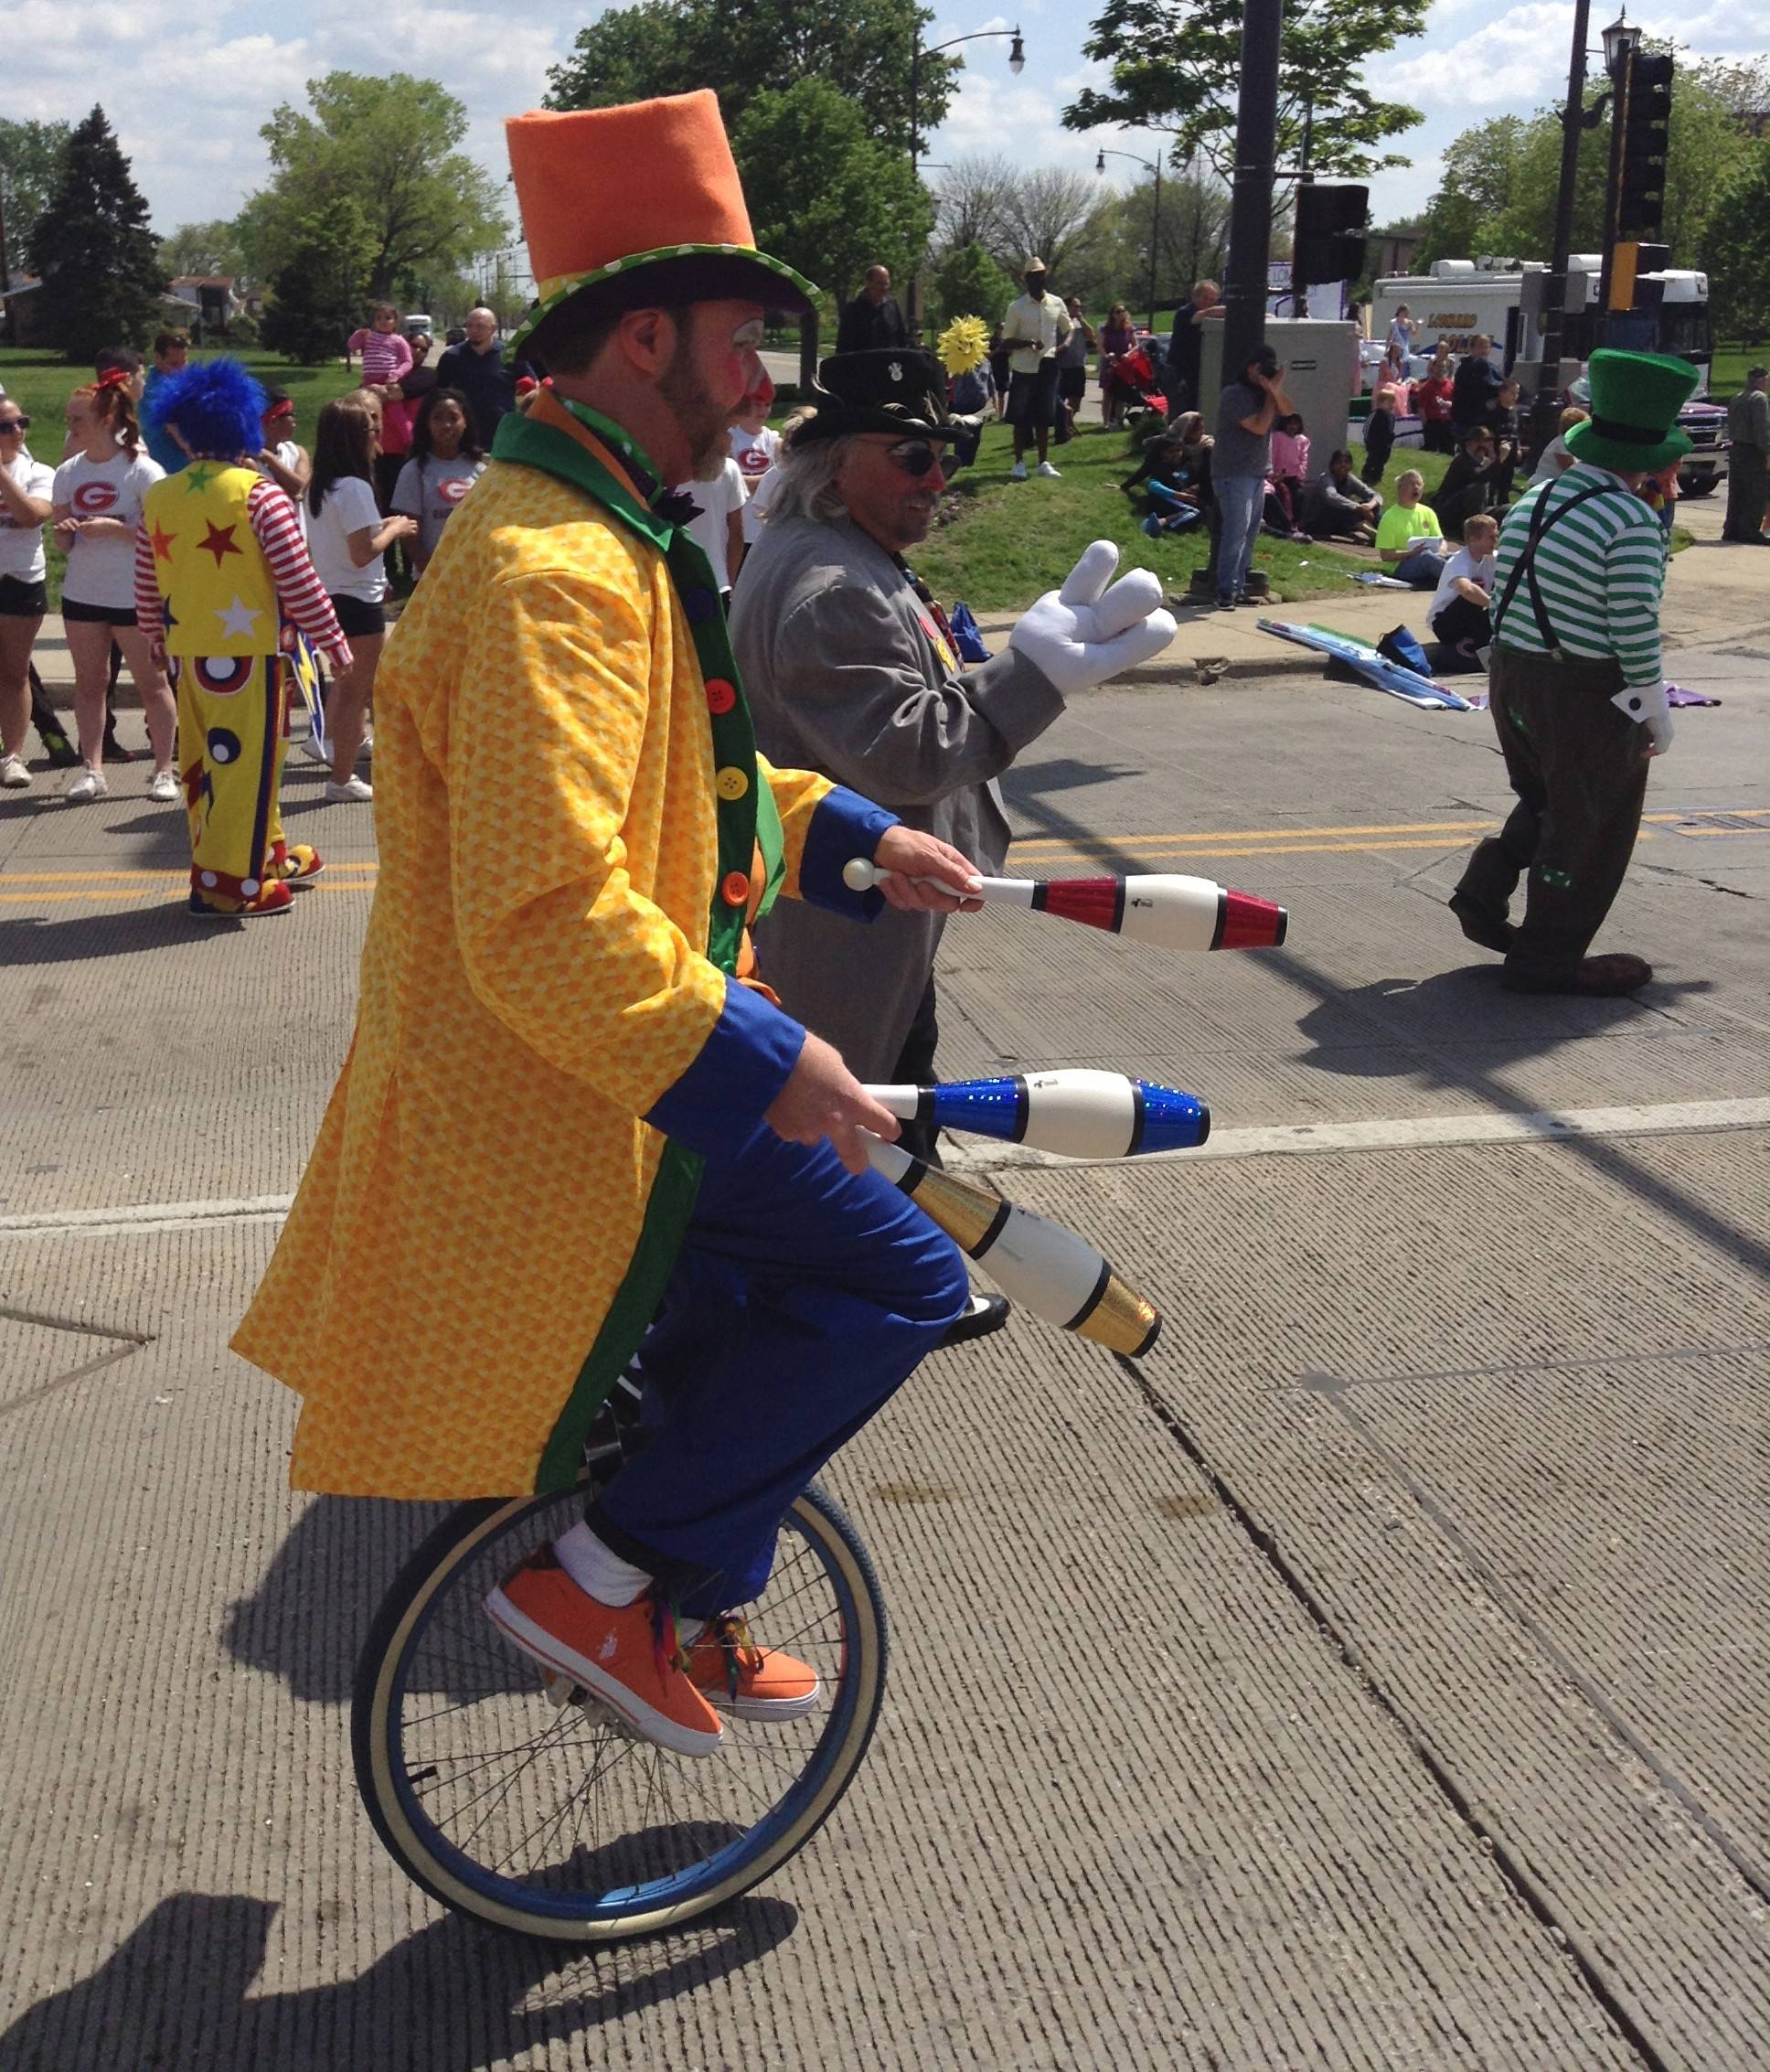 Clowns work hard to put a smile on the faces of the spectators at Sunday's Lilac Parade. More than 100 entries took part in the parade down Lombard's Main Street.